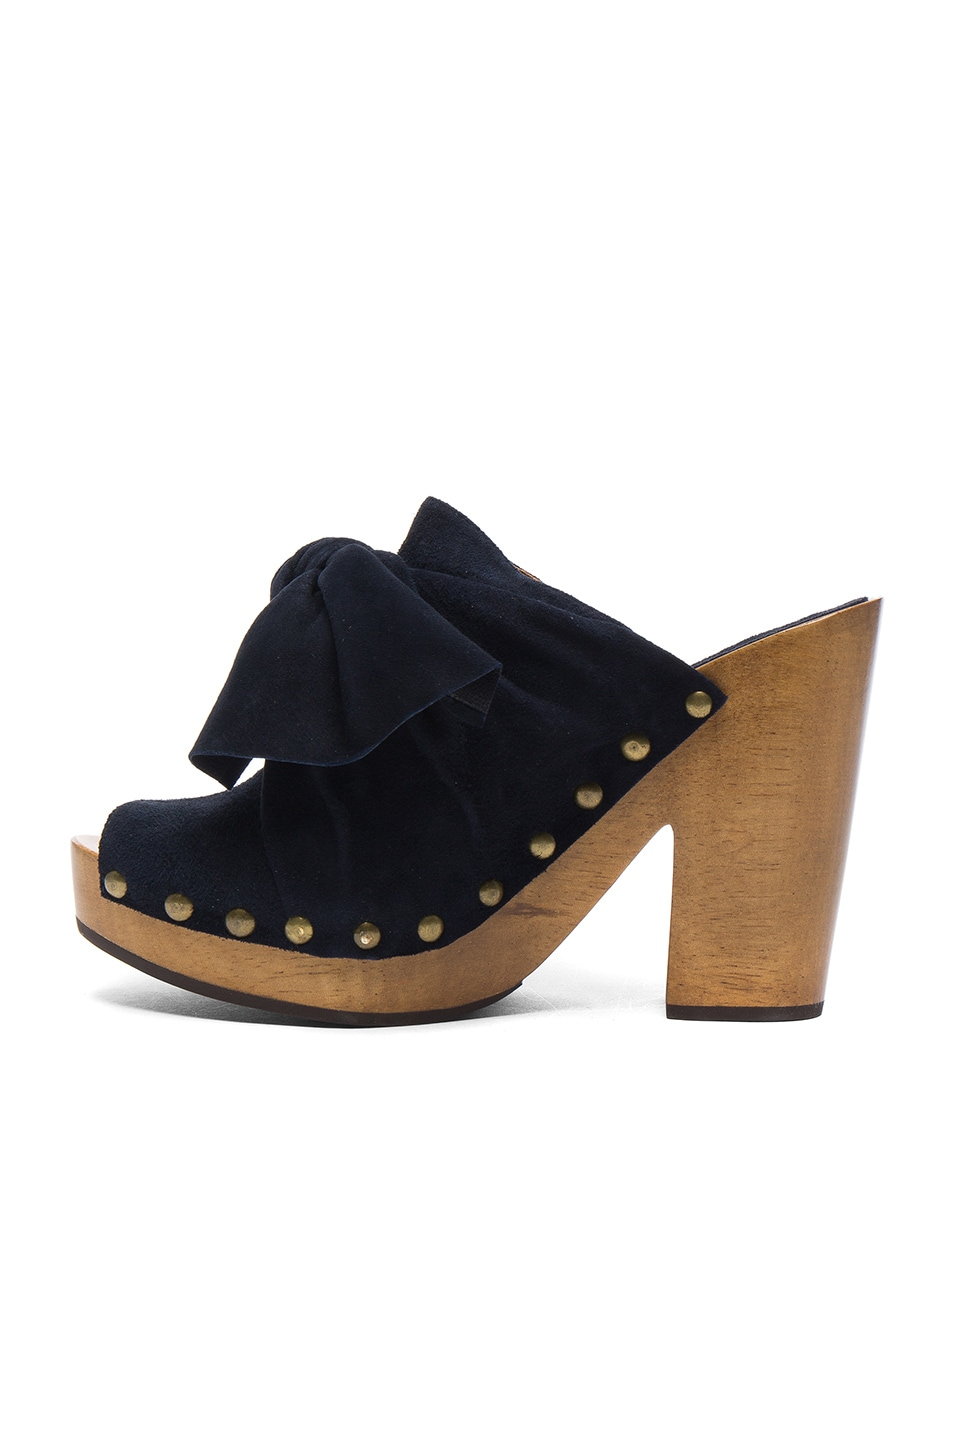 Image 5 of Ulla Johnson Suede Stevie Clogs in Midnight Suede